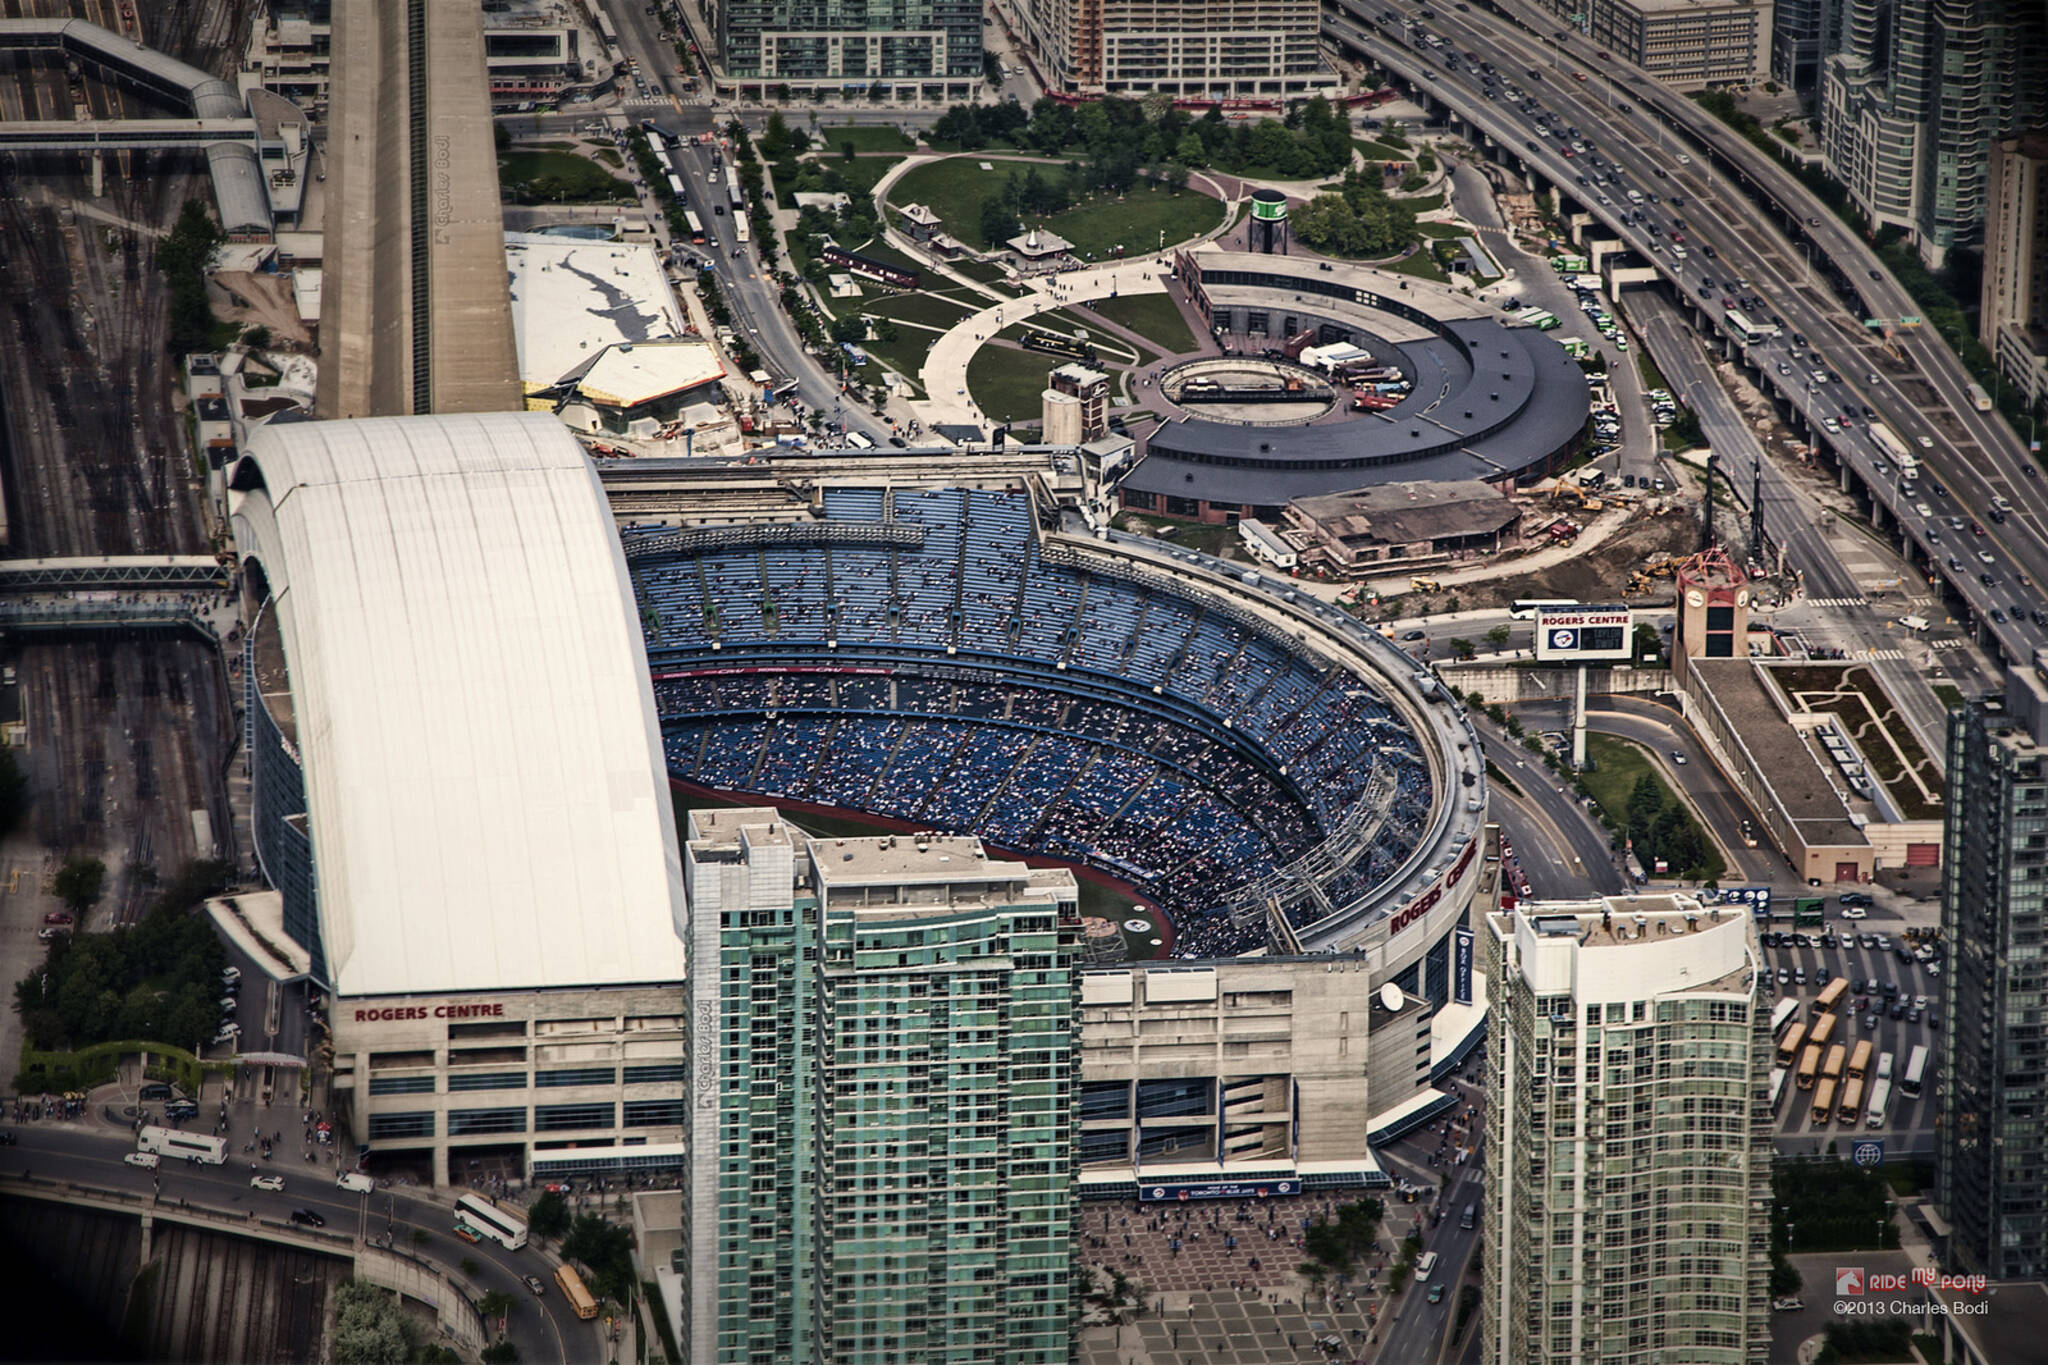 The Blue Jays are building a patio outside the Rogers Centre